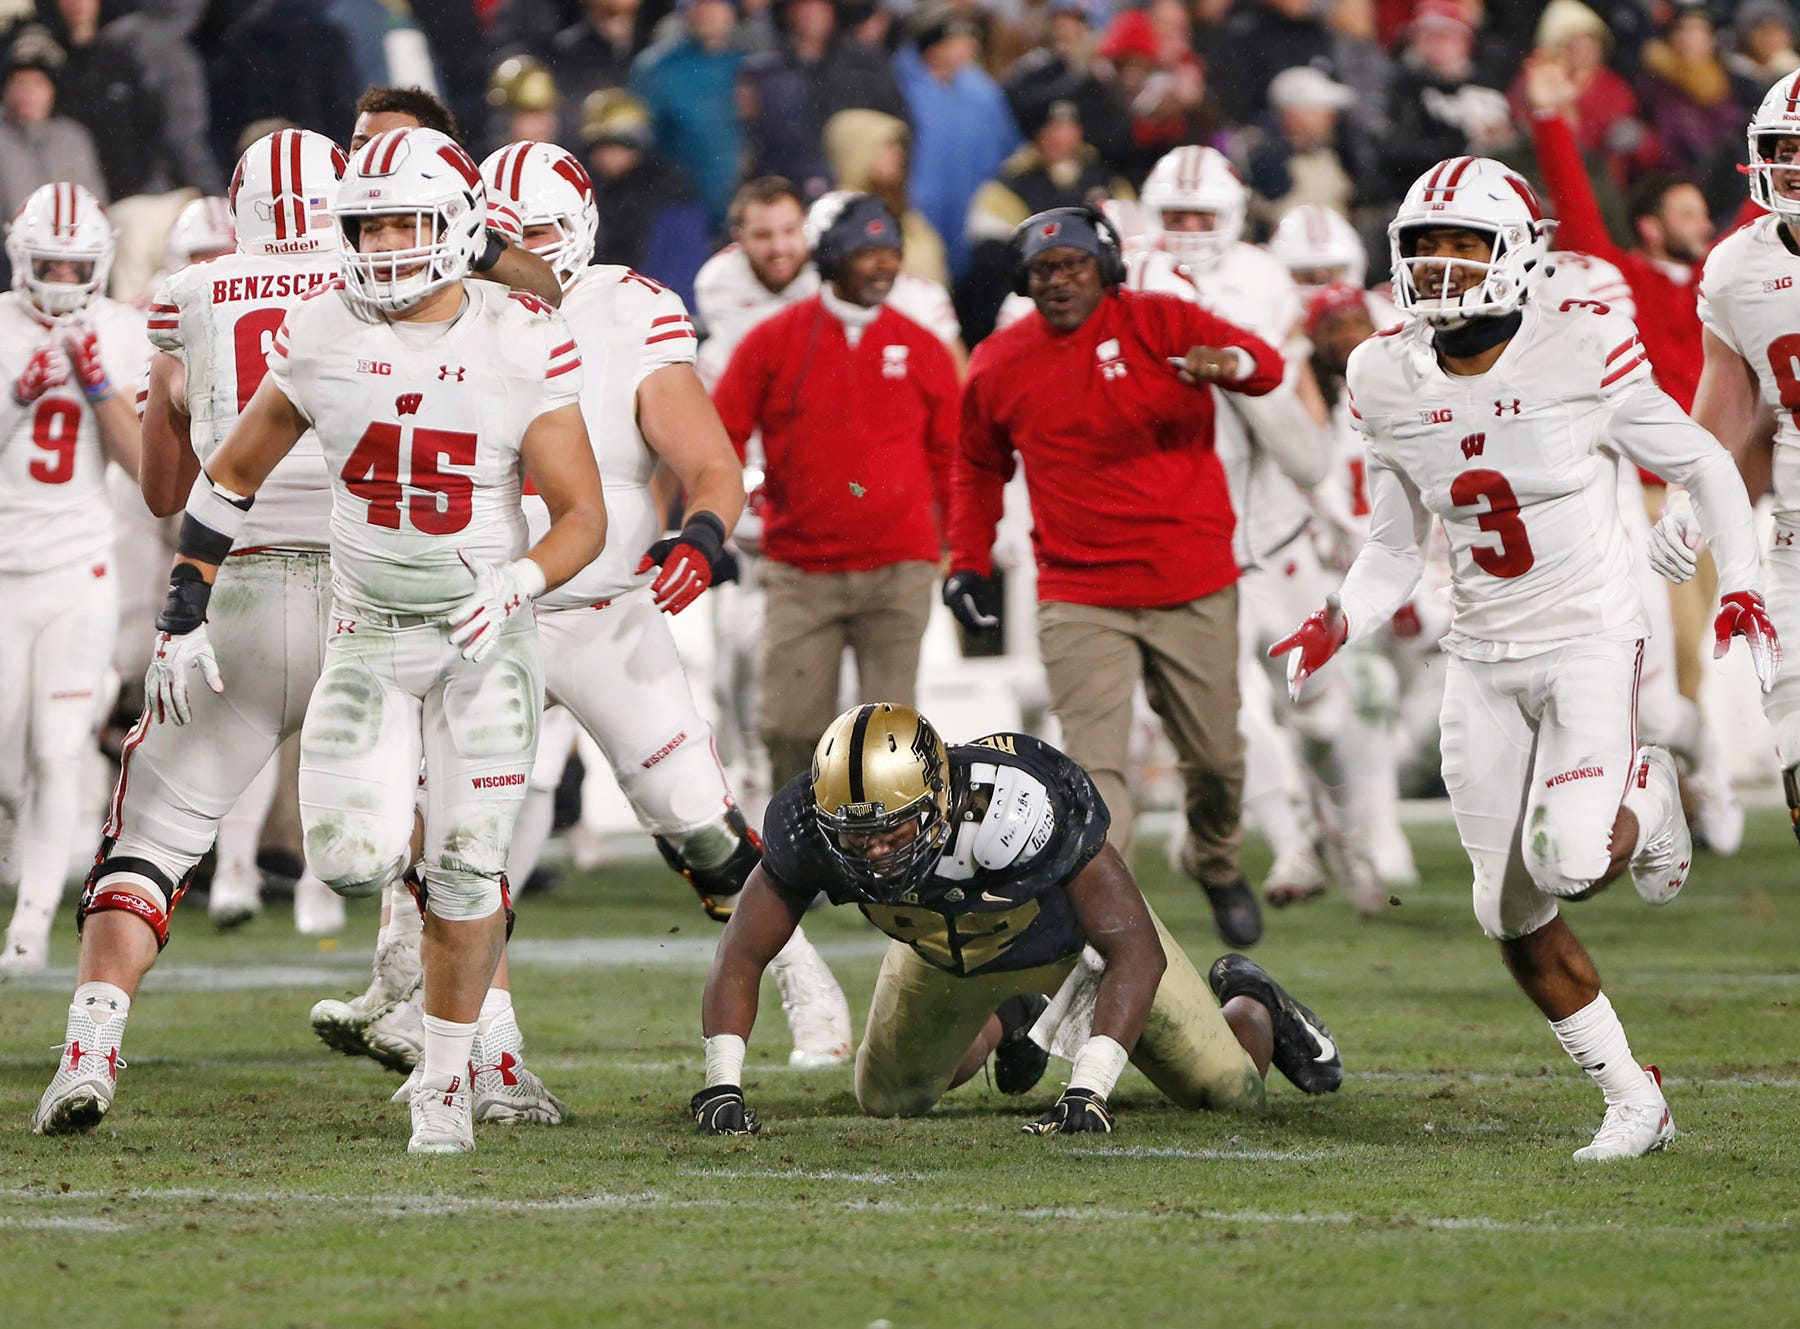 Giovanni Reviere of Purdue slumps to his knees as Wisconsin players rush the field following Jonathon Taylor's winning touchdown in the third overtime period Saturday, November 17, 2018, at Ross-Ade Stadium. Purdue fell to Wisconsin 47-44 3OT.